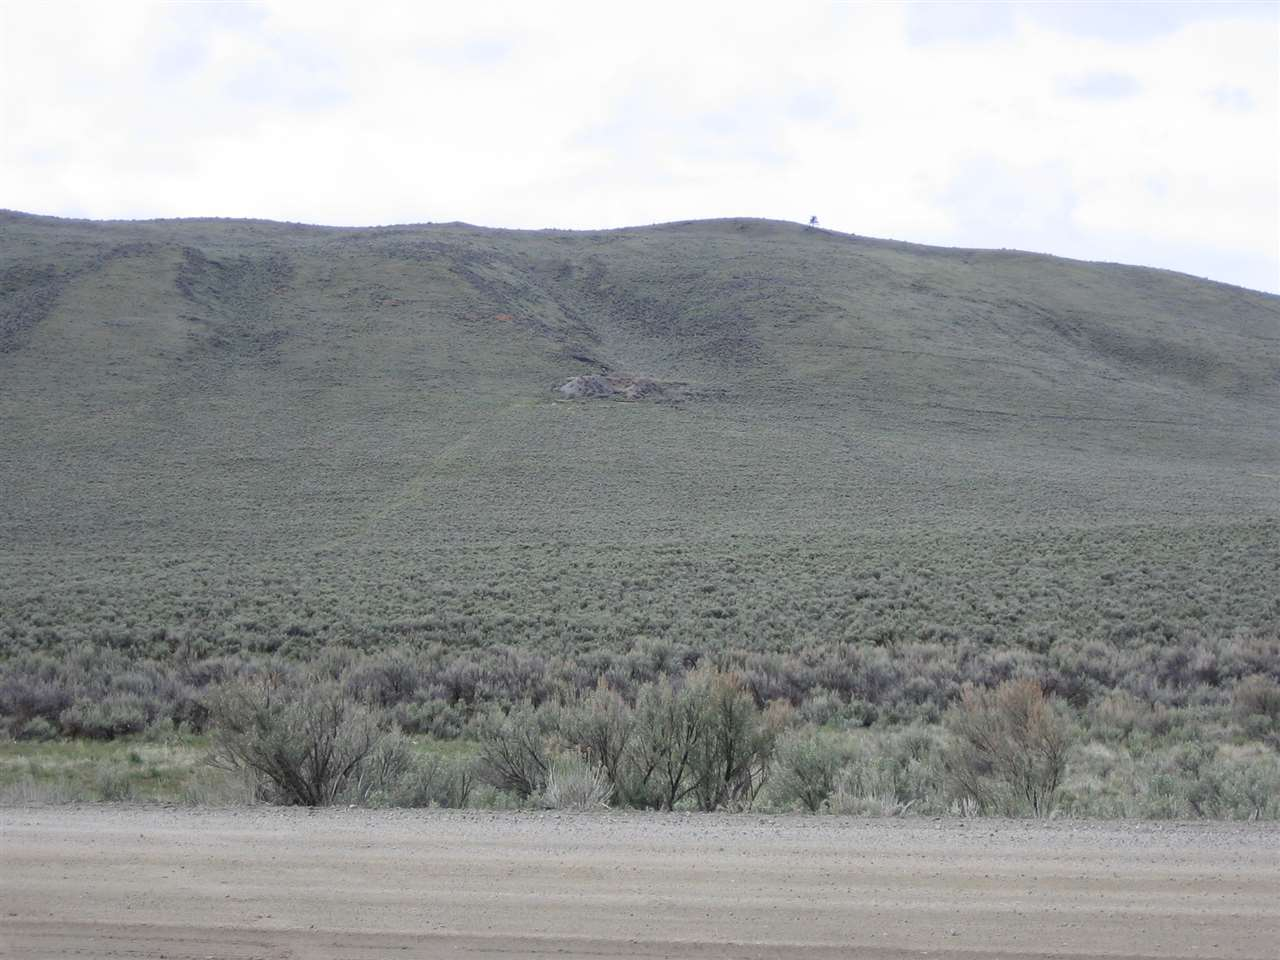 Agricultural Land for Sale at TBD Hwy 86 TBD Hwy 86 Baker City, Oregon 97814